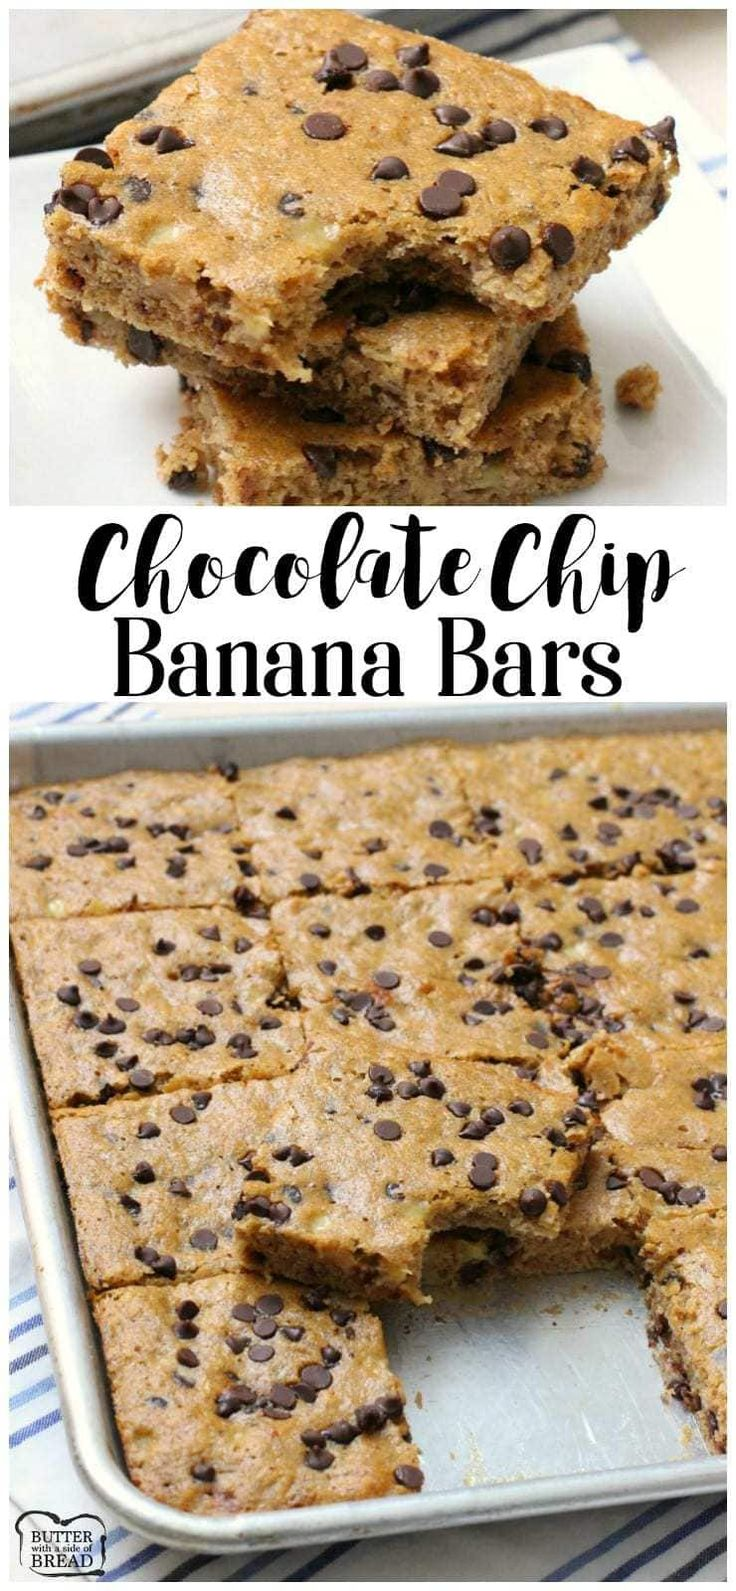 Chocolate Chip Banana Bars are delicious, filling, and perfect for any time! Packed with 5 ripe bananas & whole wheat flour they're sweet & satisfying.